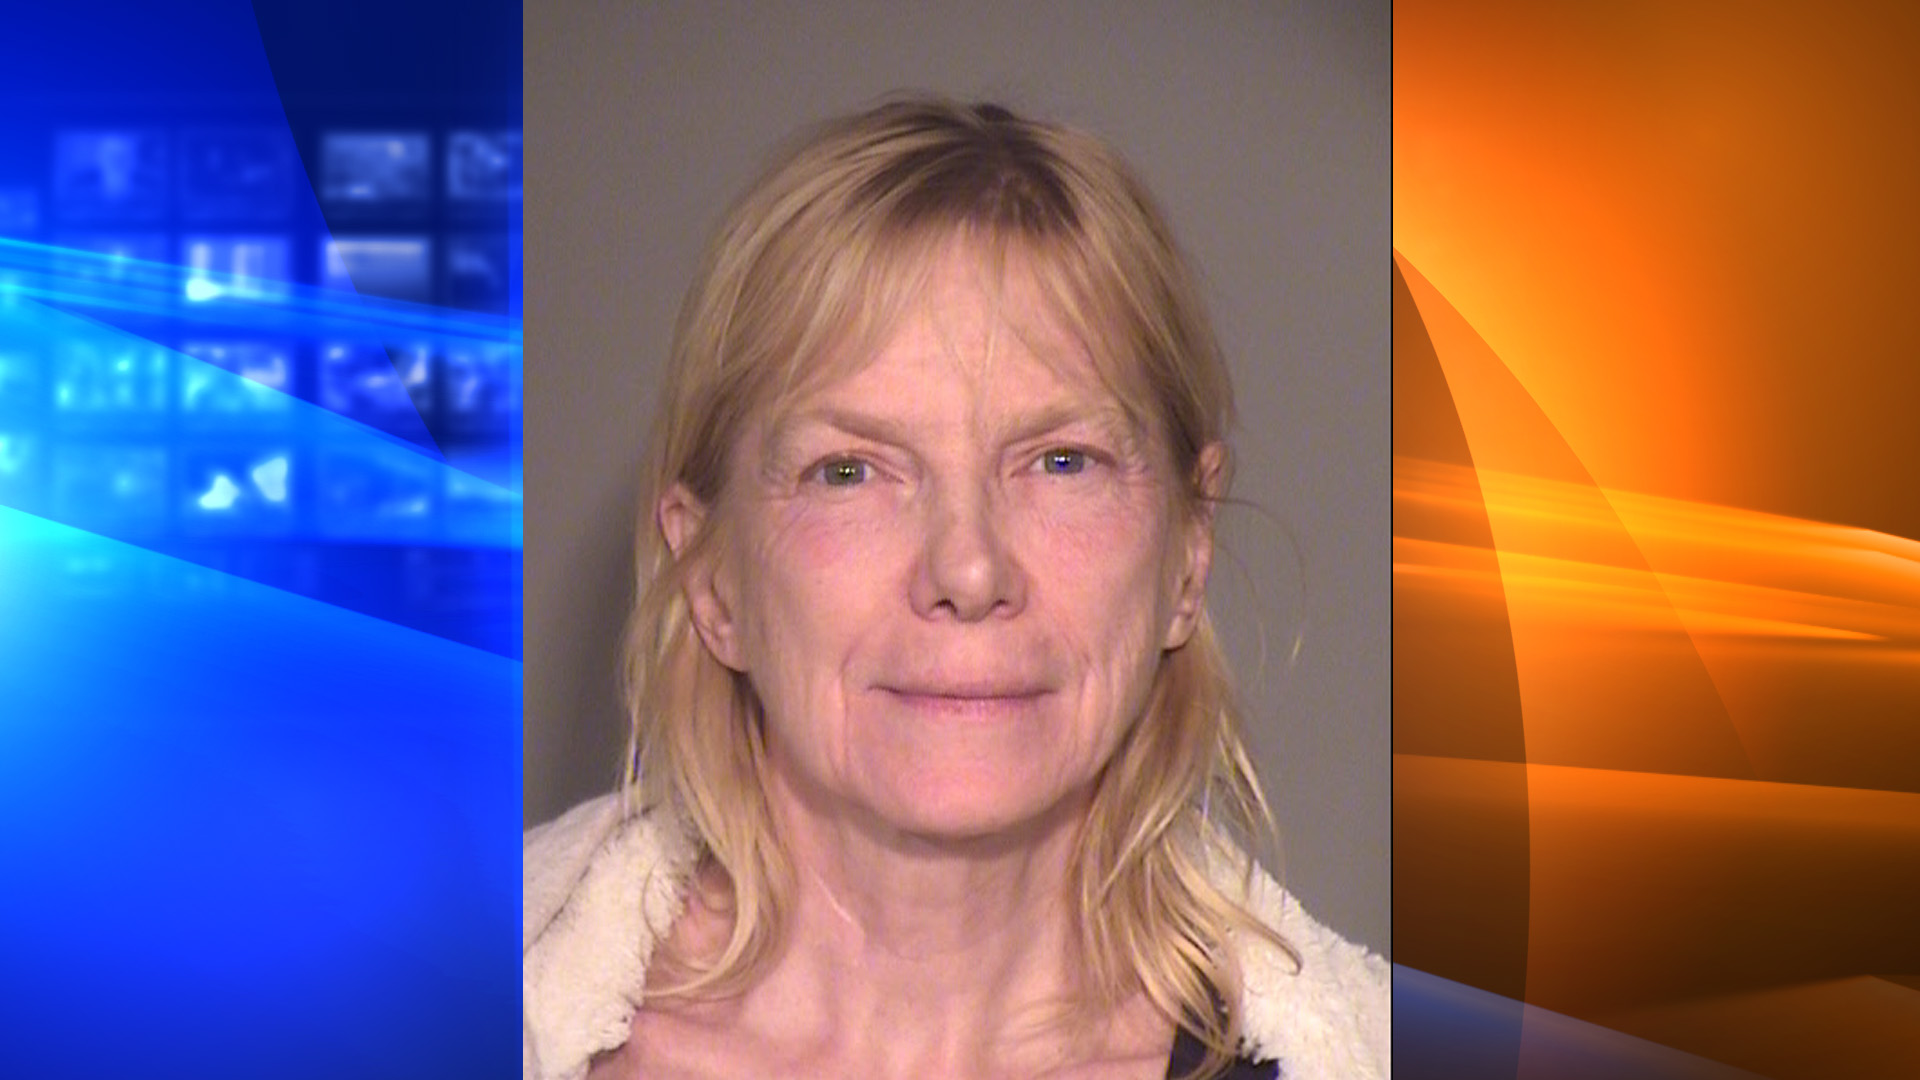 Catherine Ann Vandermaesen, of Ojai, is seen in this booking photo from the Ventura County Sheriff's Office.